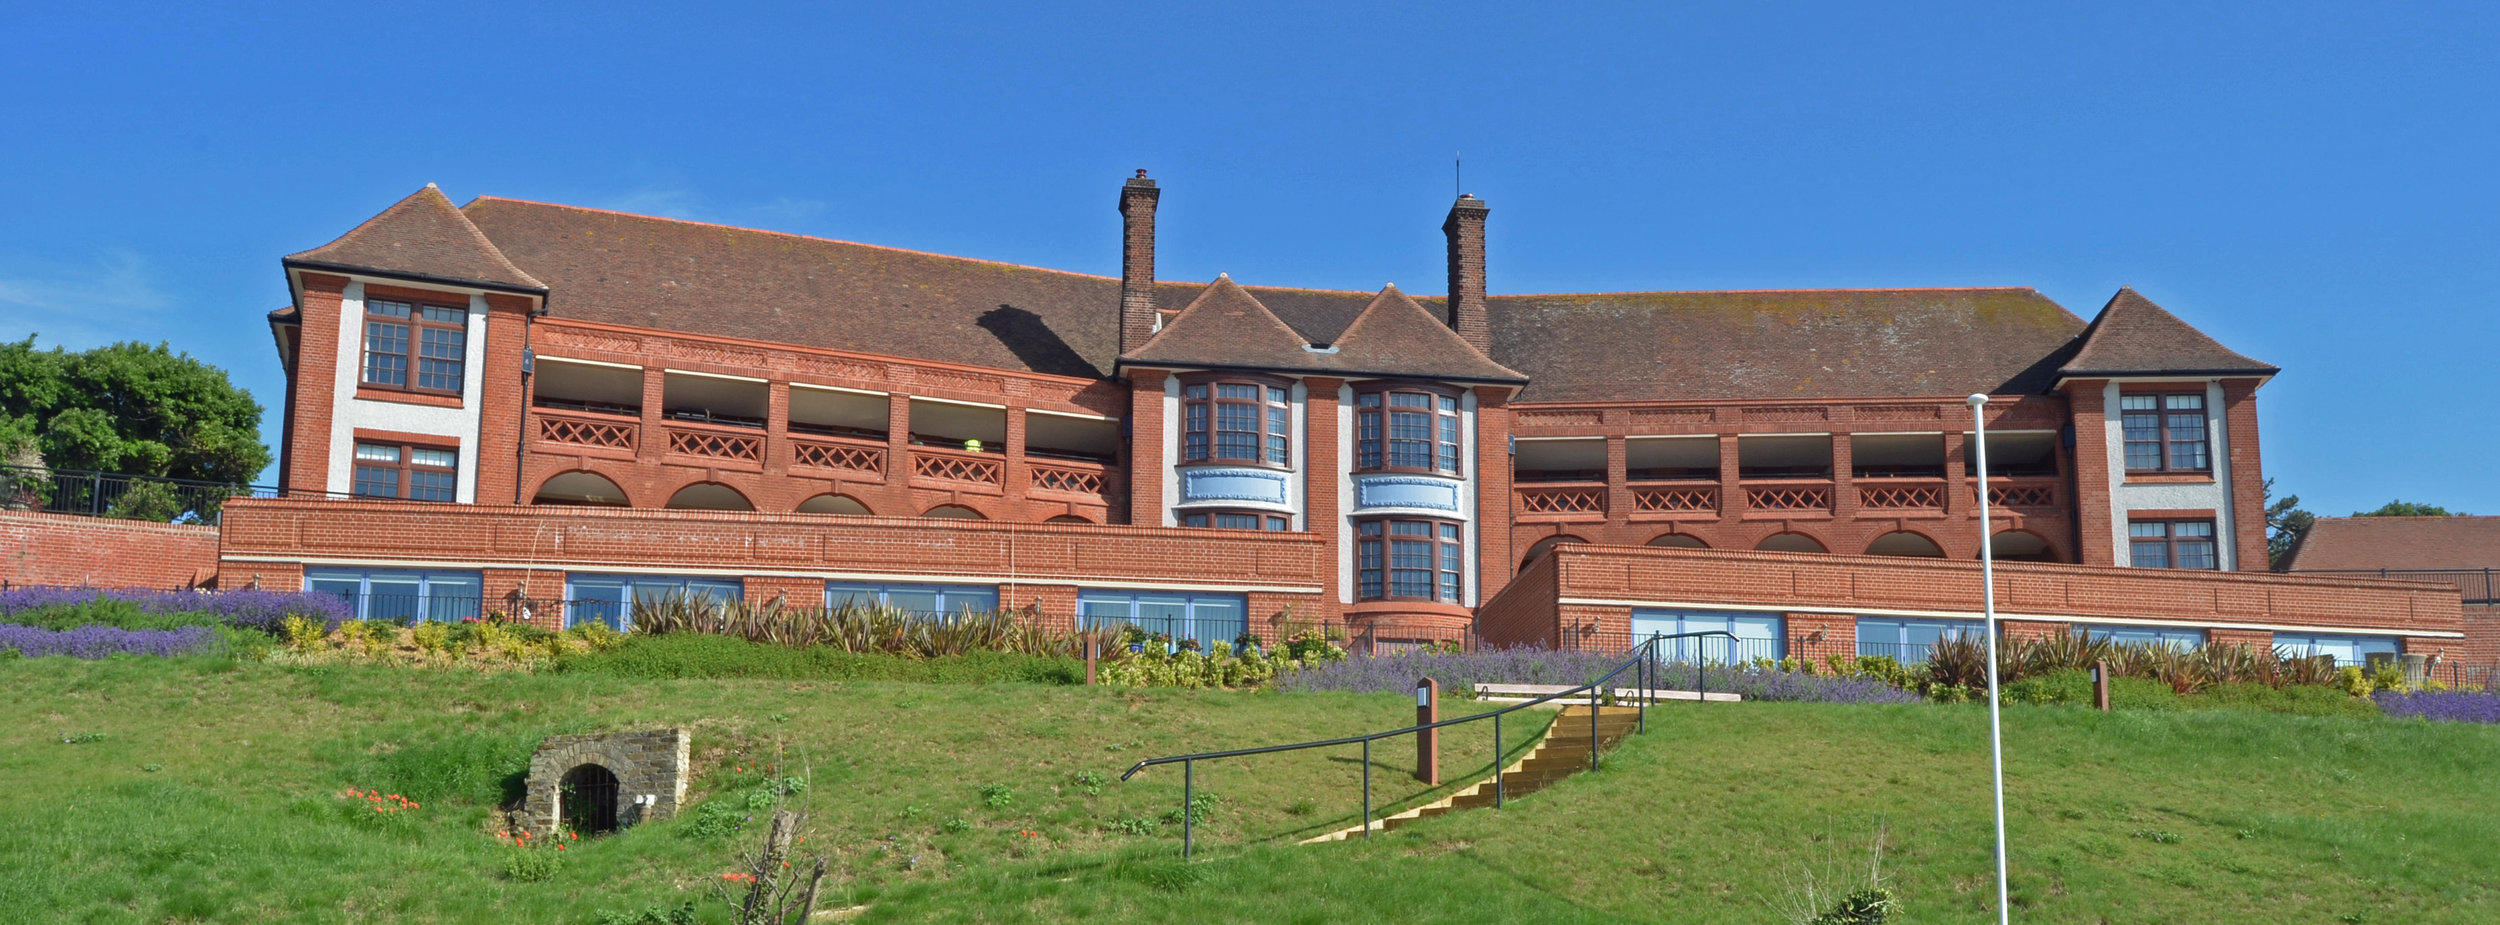 The Bartlet  Felixstowe   Winner of the RIBA Craftmanship Awards 2017, Restoration category.   Residential development of the former Grade II* listed Bartlet Hospital along with Cautley House to the west. The site is elevated on the north side of Undercliff Road East and benefits from commanding sea views. Planning and listed building consents were granted to convert the building into residential apartments and also includes for the erection of three new dwellings within the grounds.